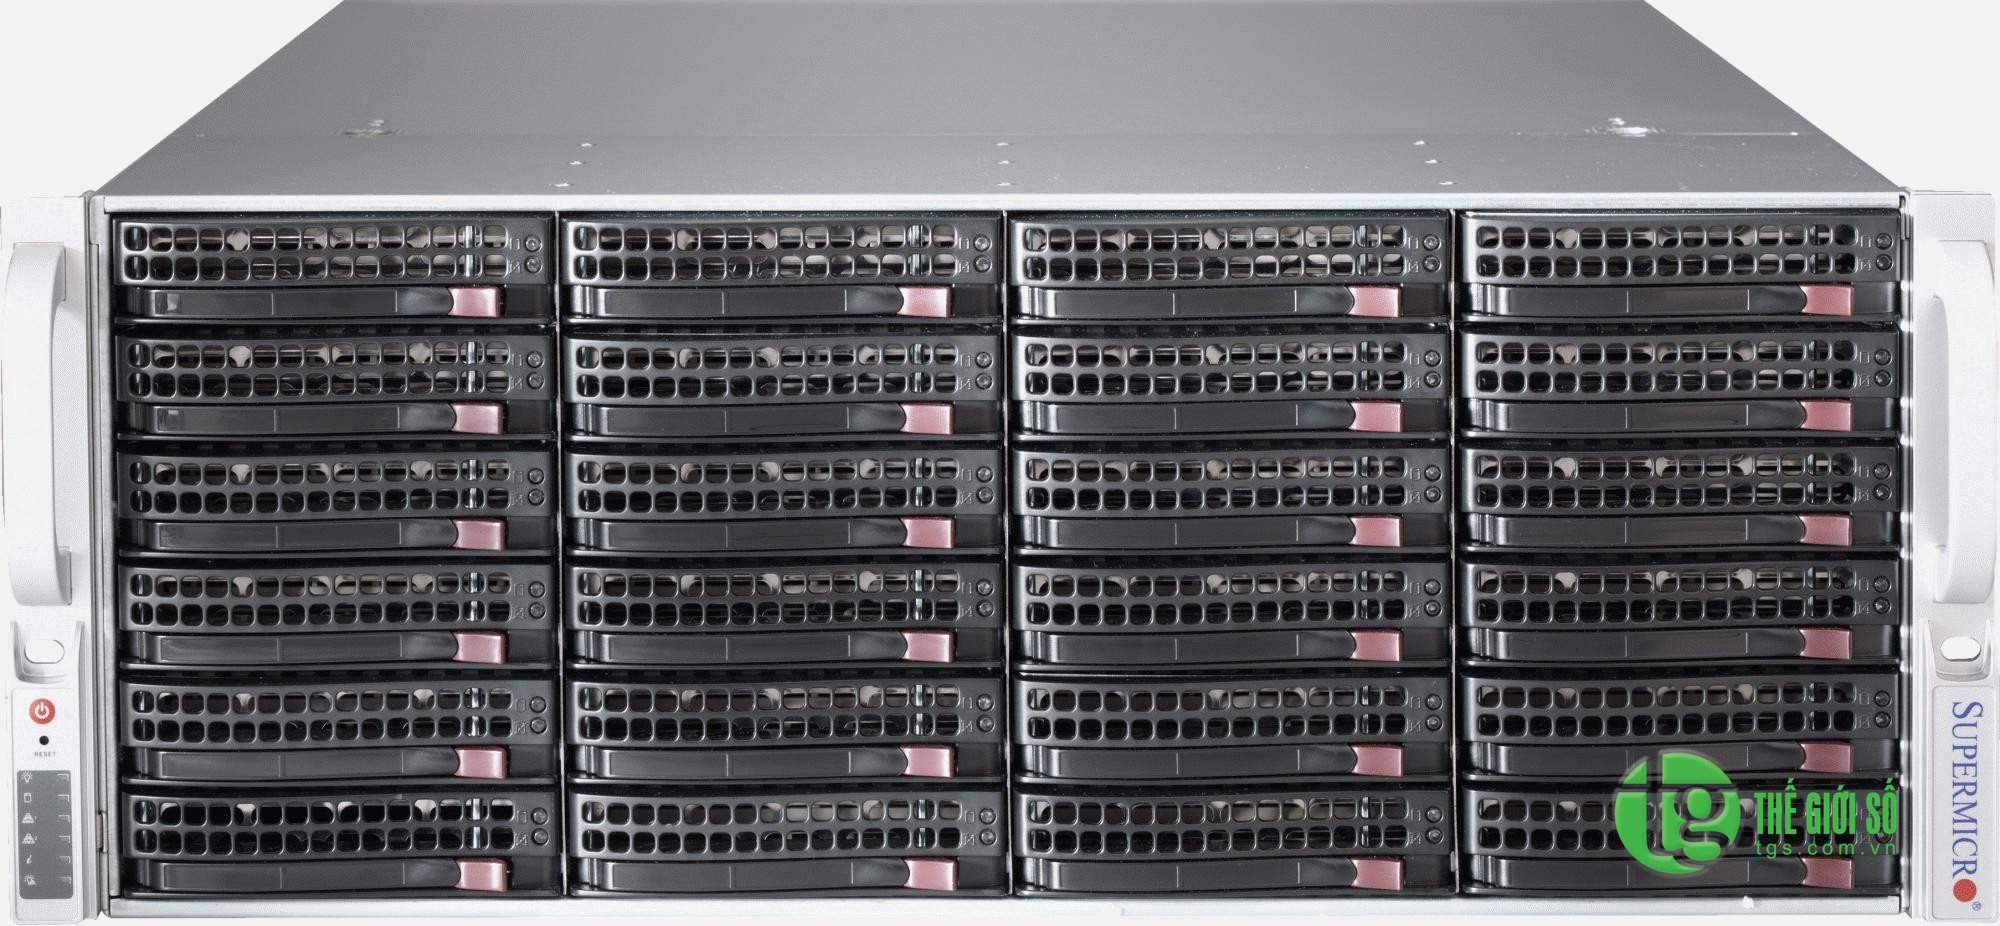 Supermicro SuperStorage Server SSG-6048R-E1CR24N